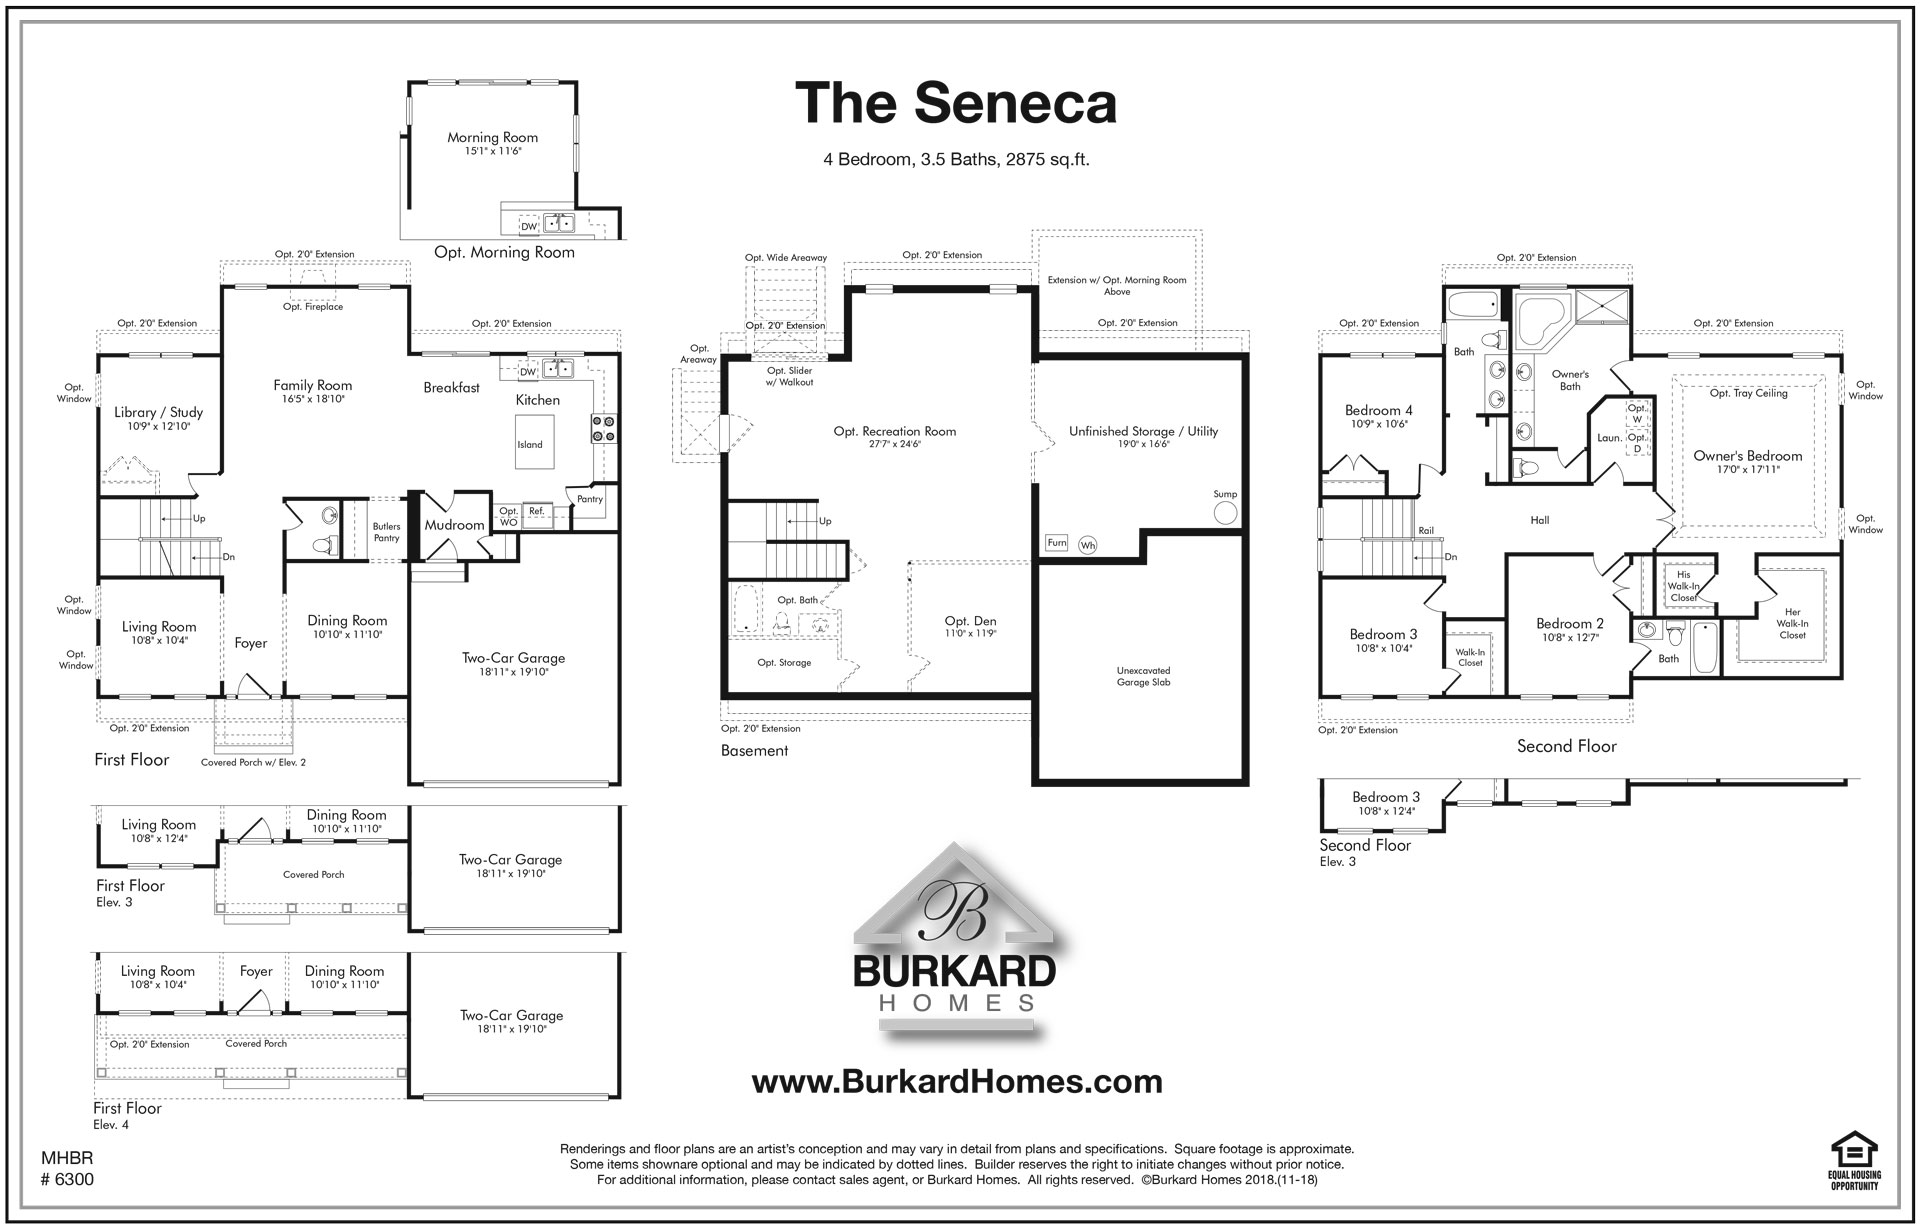 Burkard Homes Seneca I two story single family home floor plan.